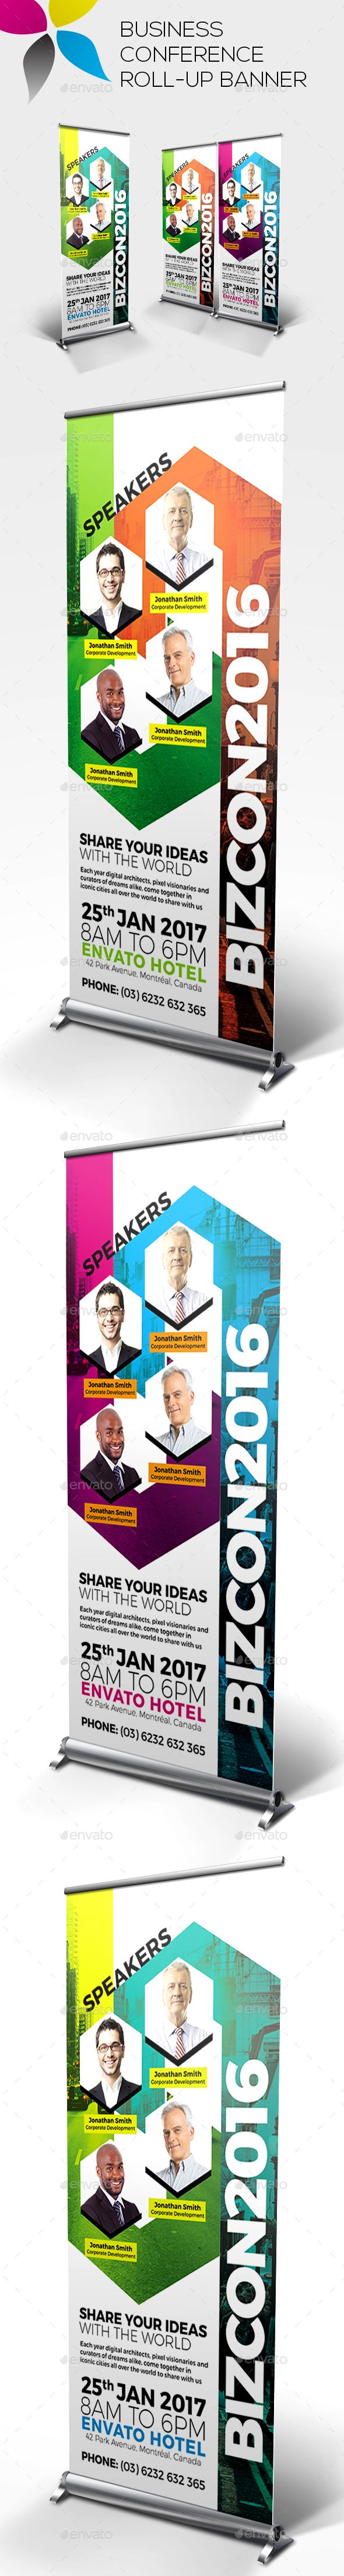 Business Conference Roll Up Banners By Inddesigner Banner Size